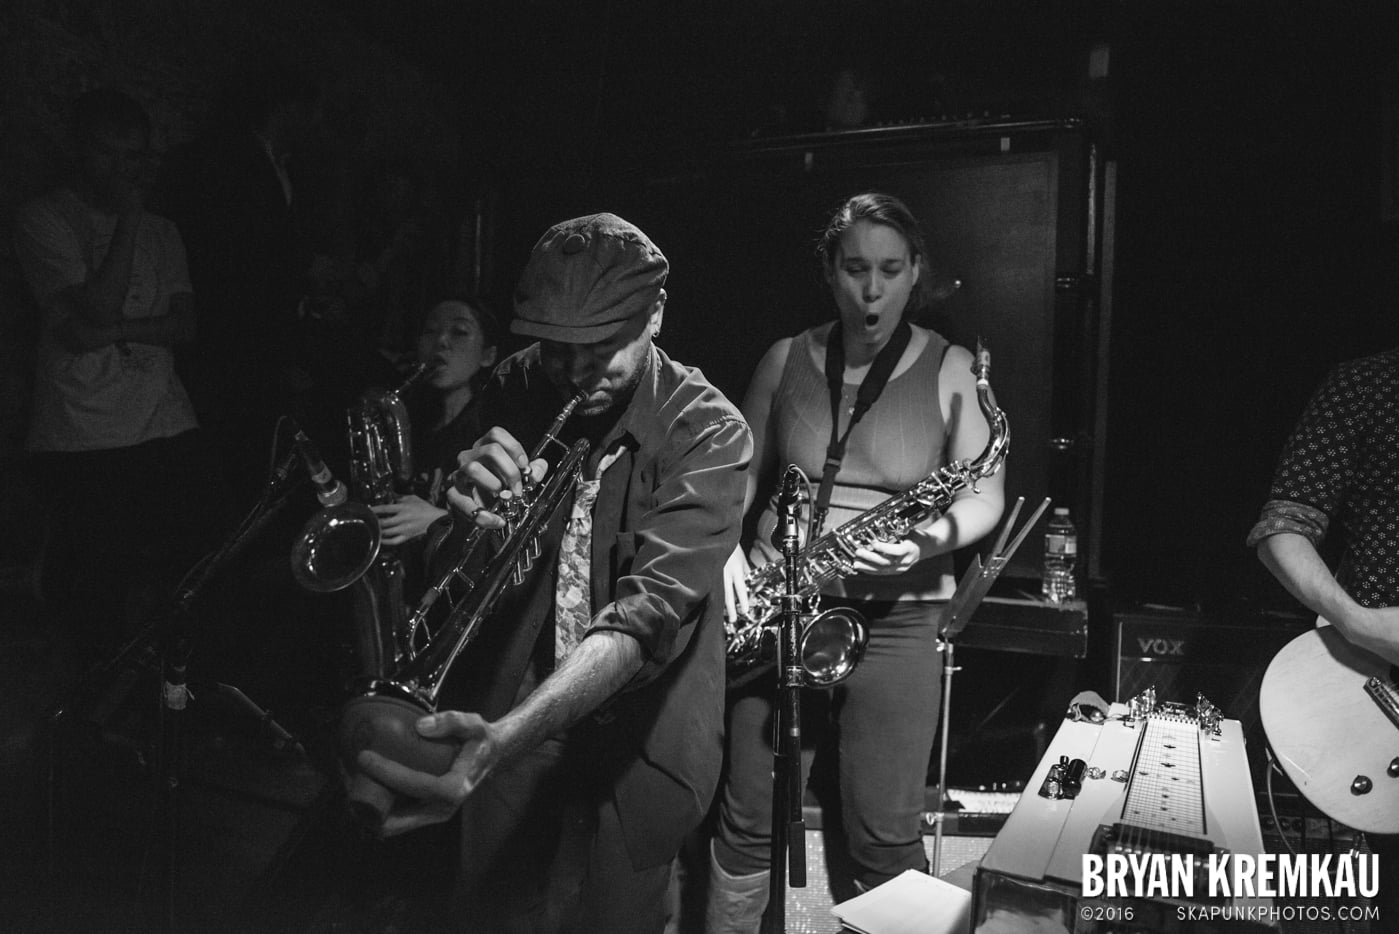 Trapper Schoepp & The Shades @ Bowery Electric, NYC - 11.20.14 (8)